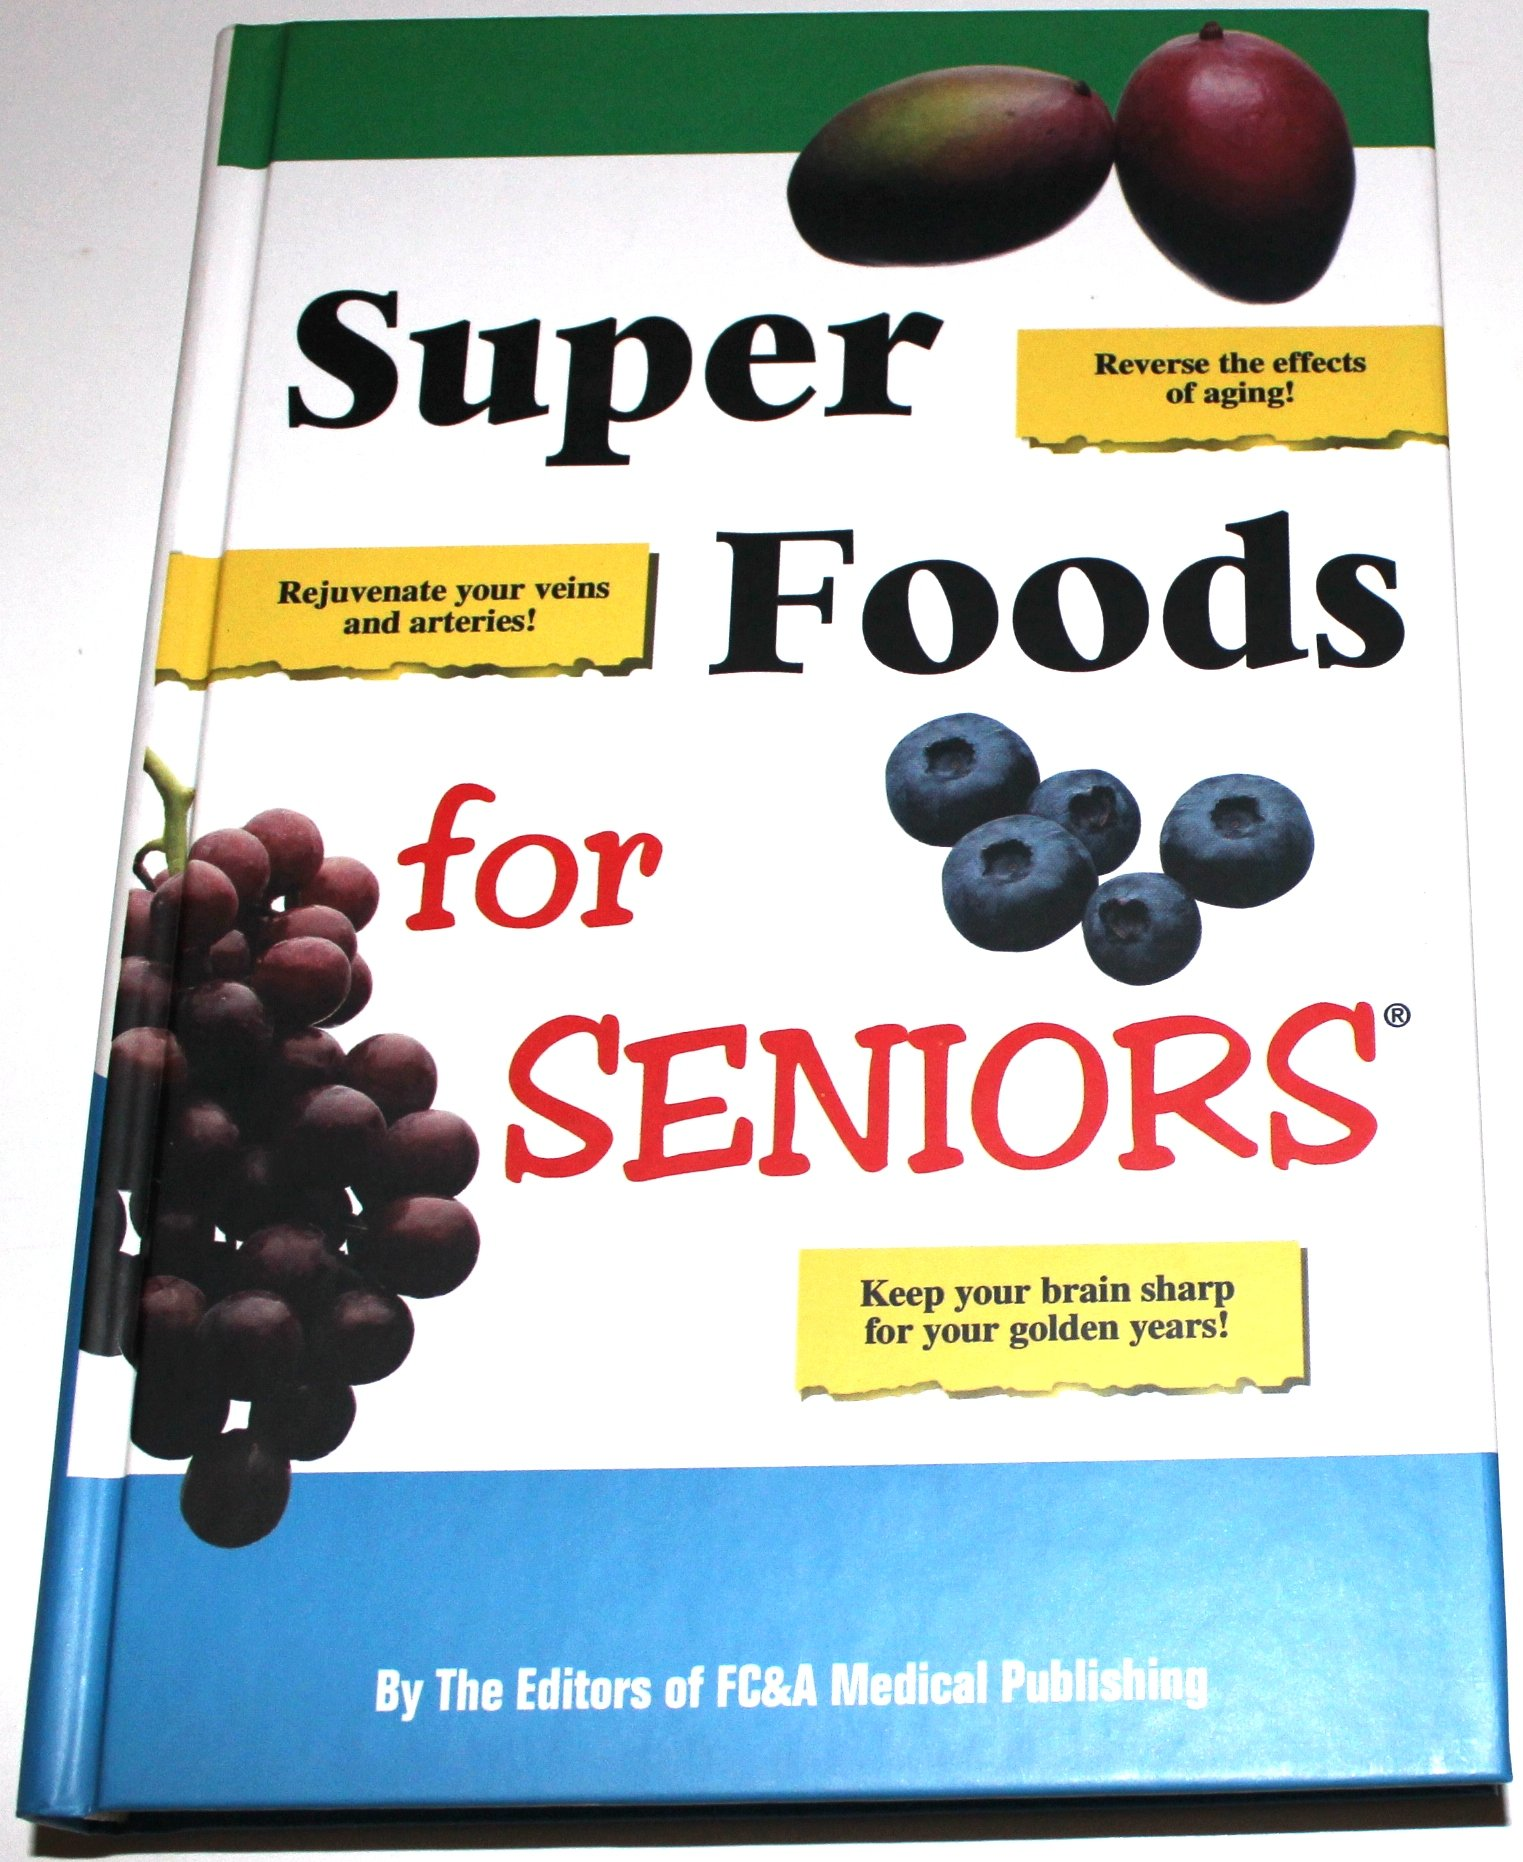 Super Seniors Editors Medical Publishing product image